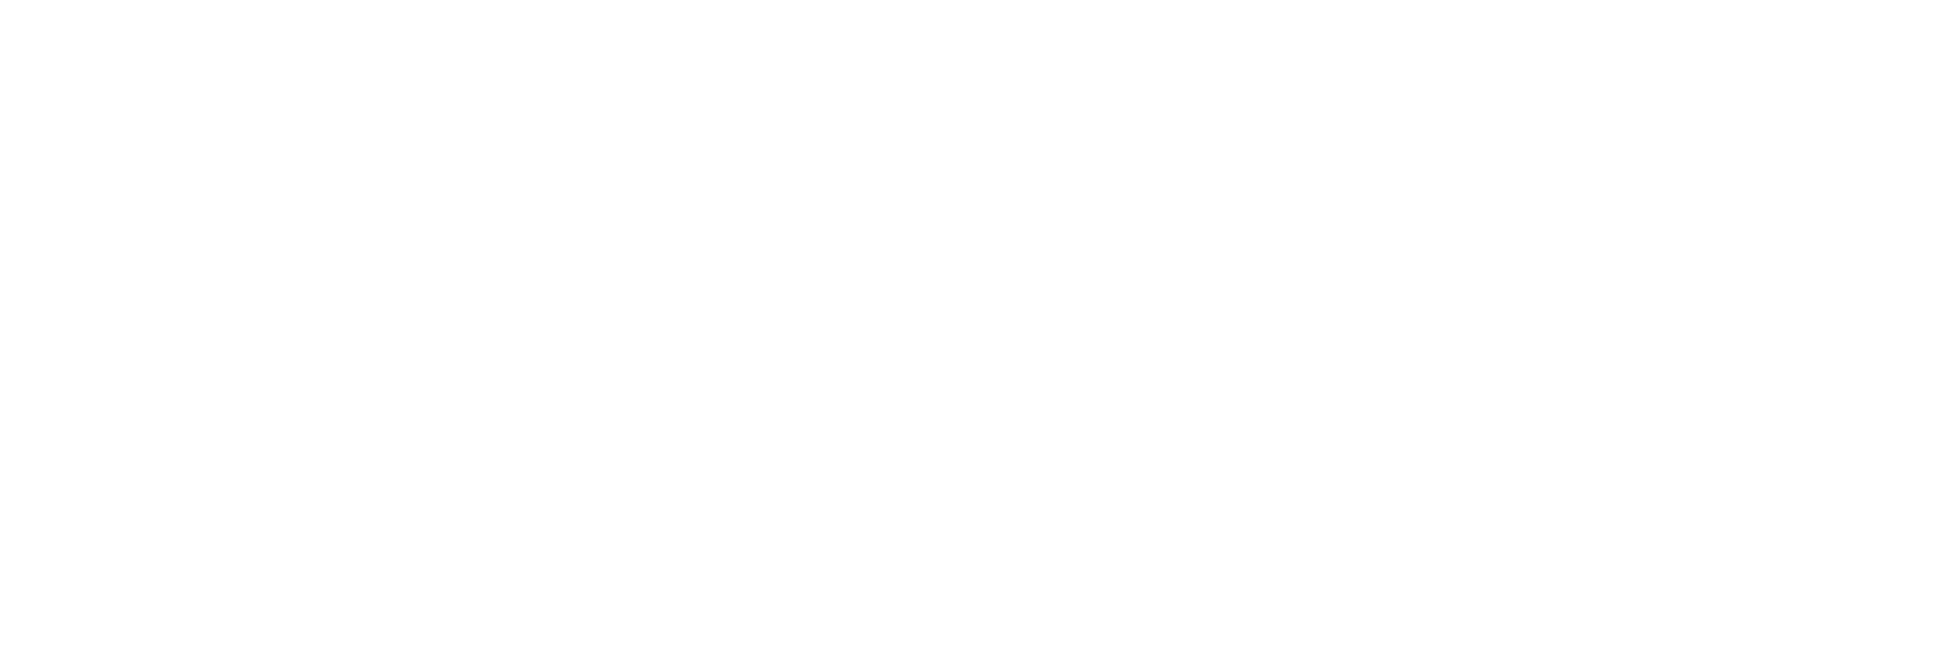 Digital Disruption Agency logo